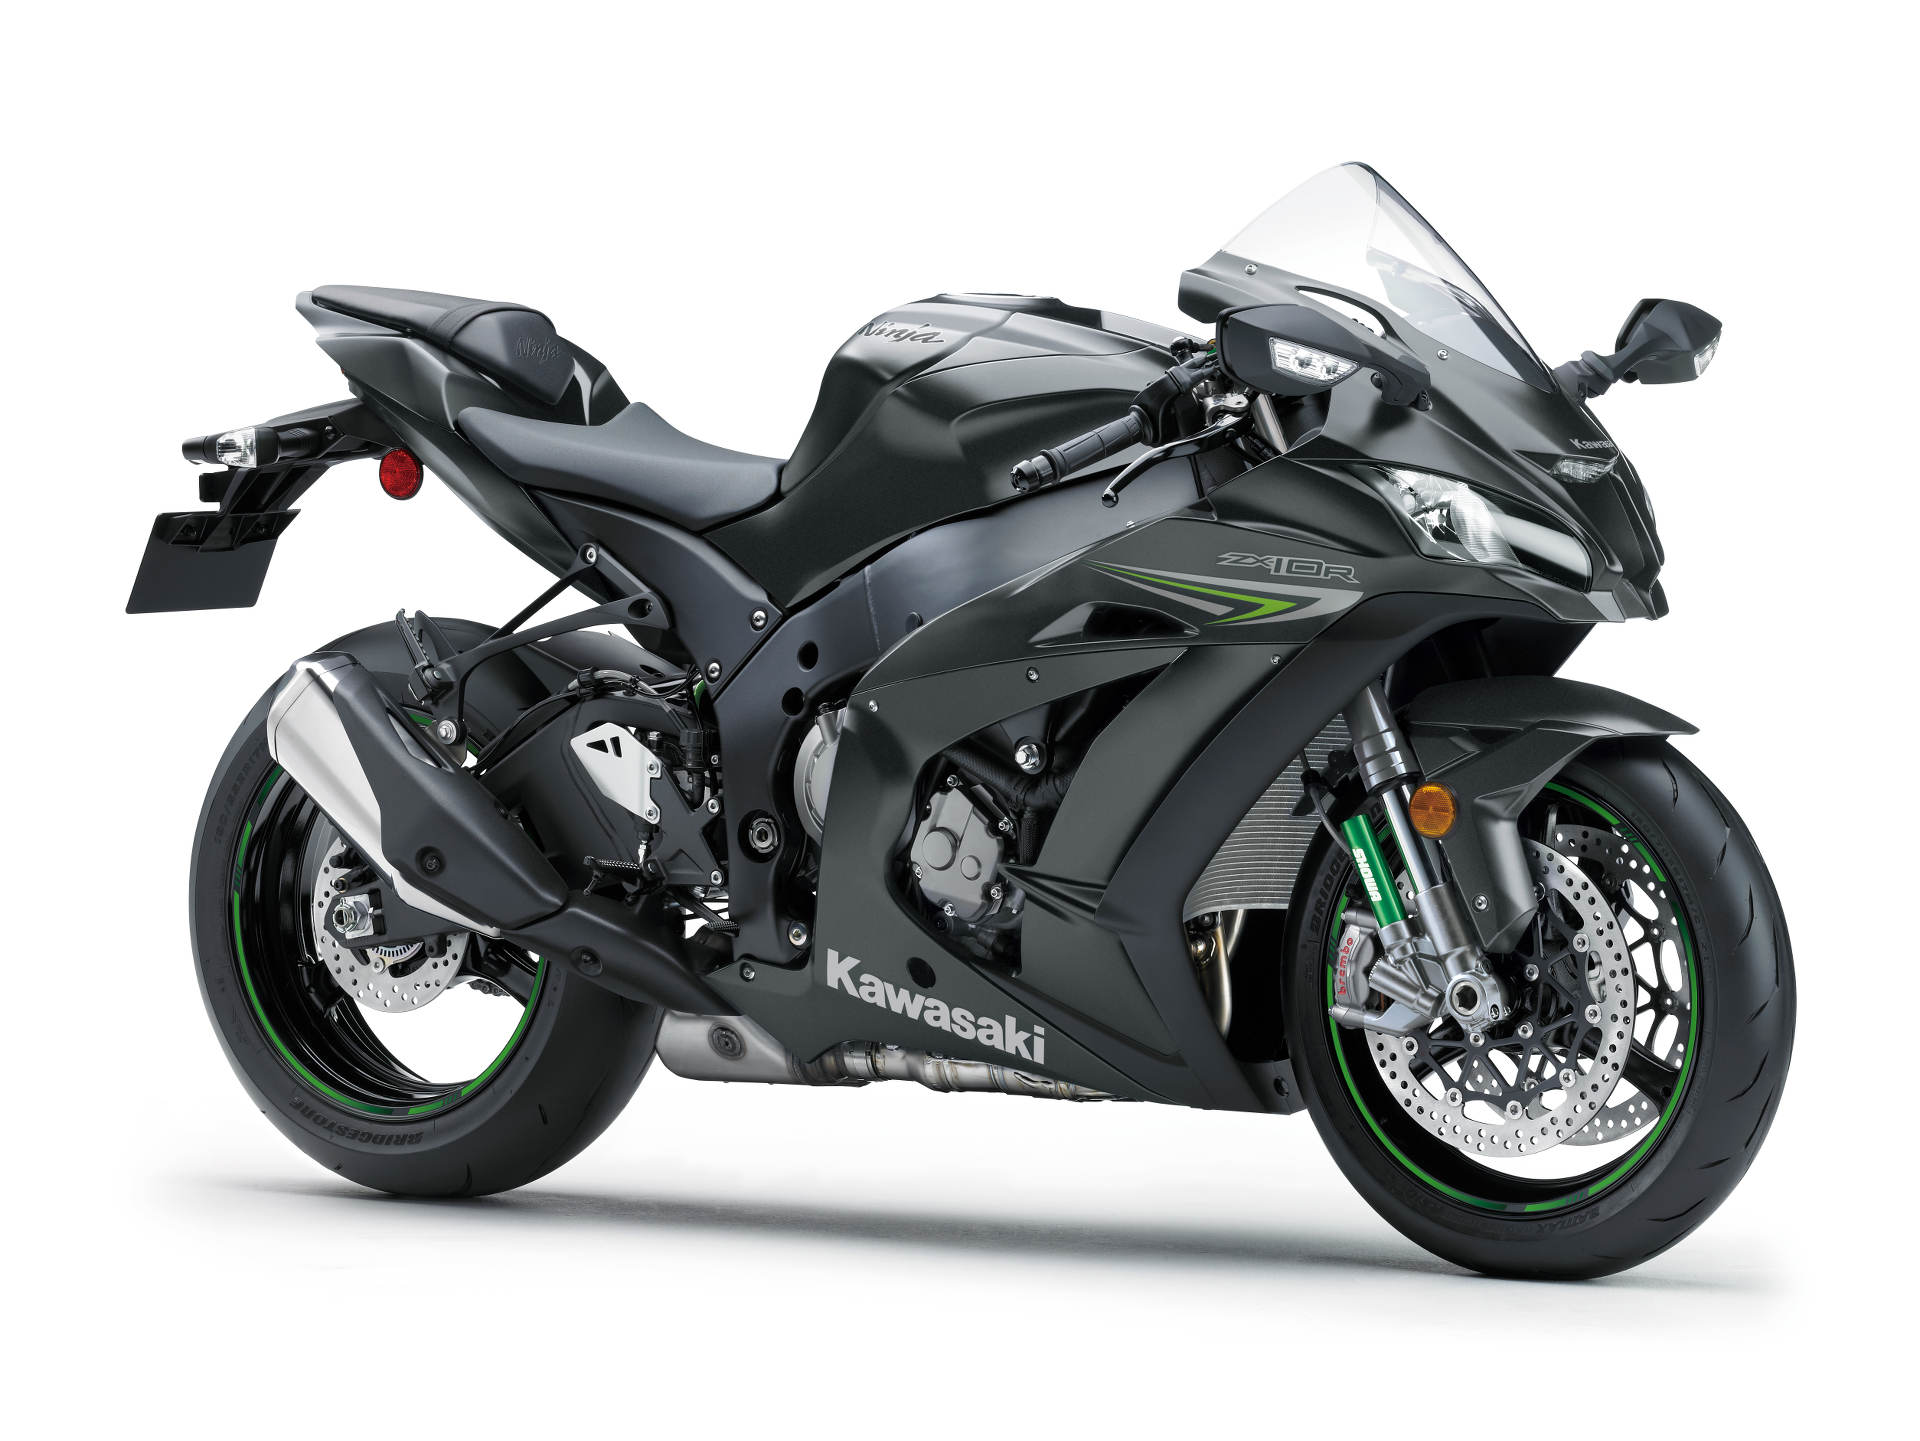 Kawasaki Reveals 2016 Ninja Zx 10r Abs Building On A Race Winning